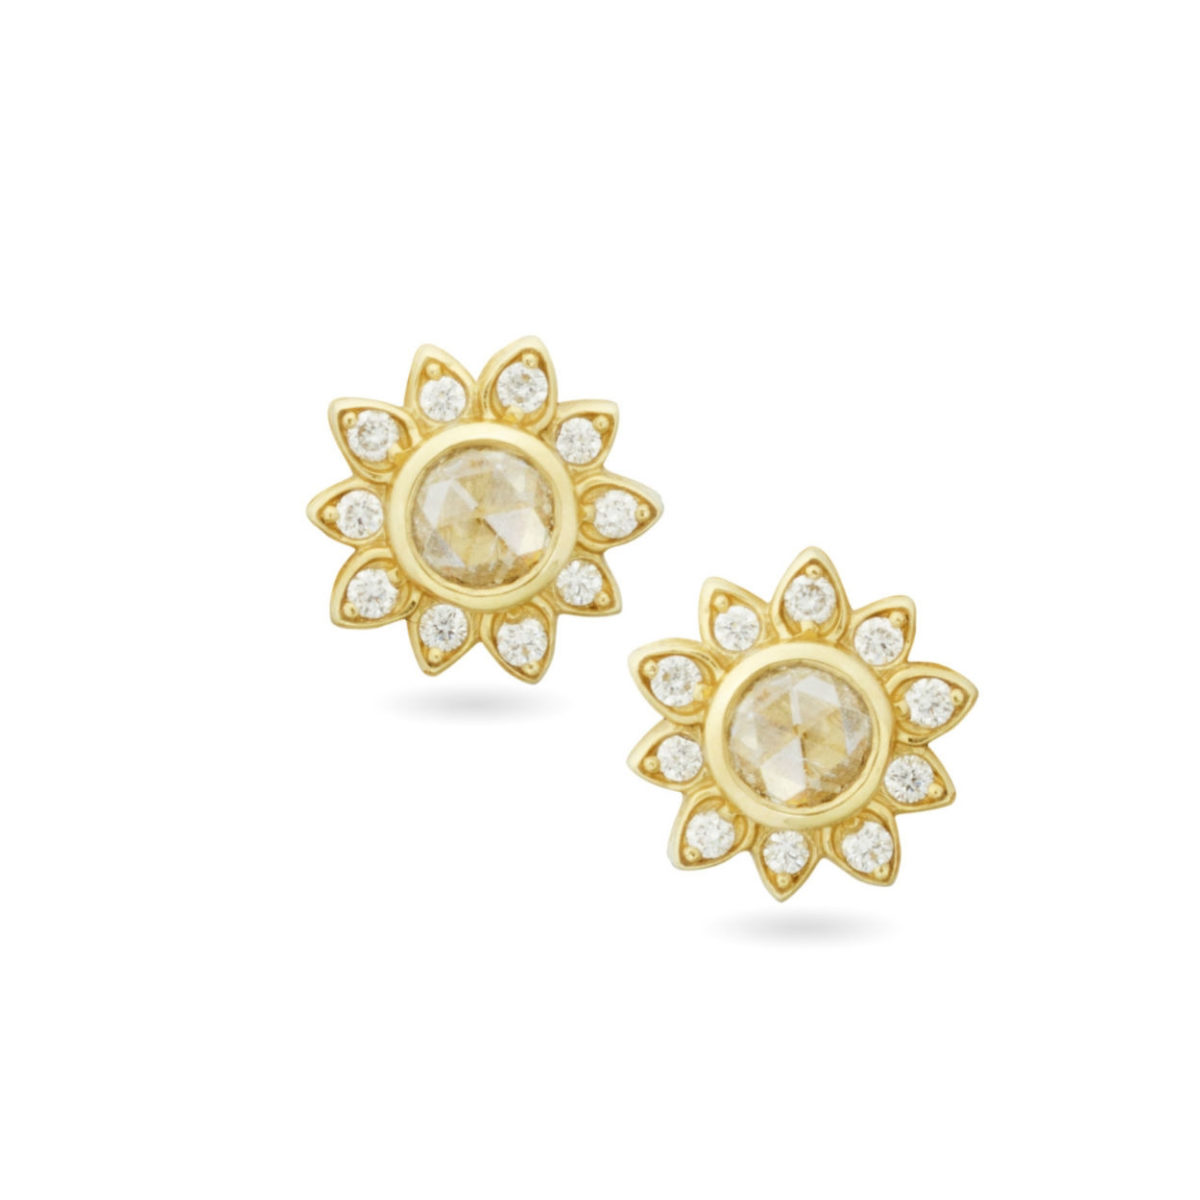 AMT Jewelry Design Rose Soleil diamond stud earrings Marshall Pierce & Company Chicago